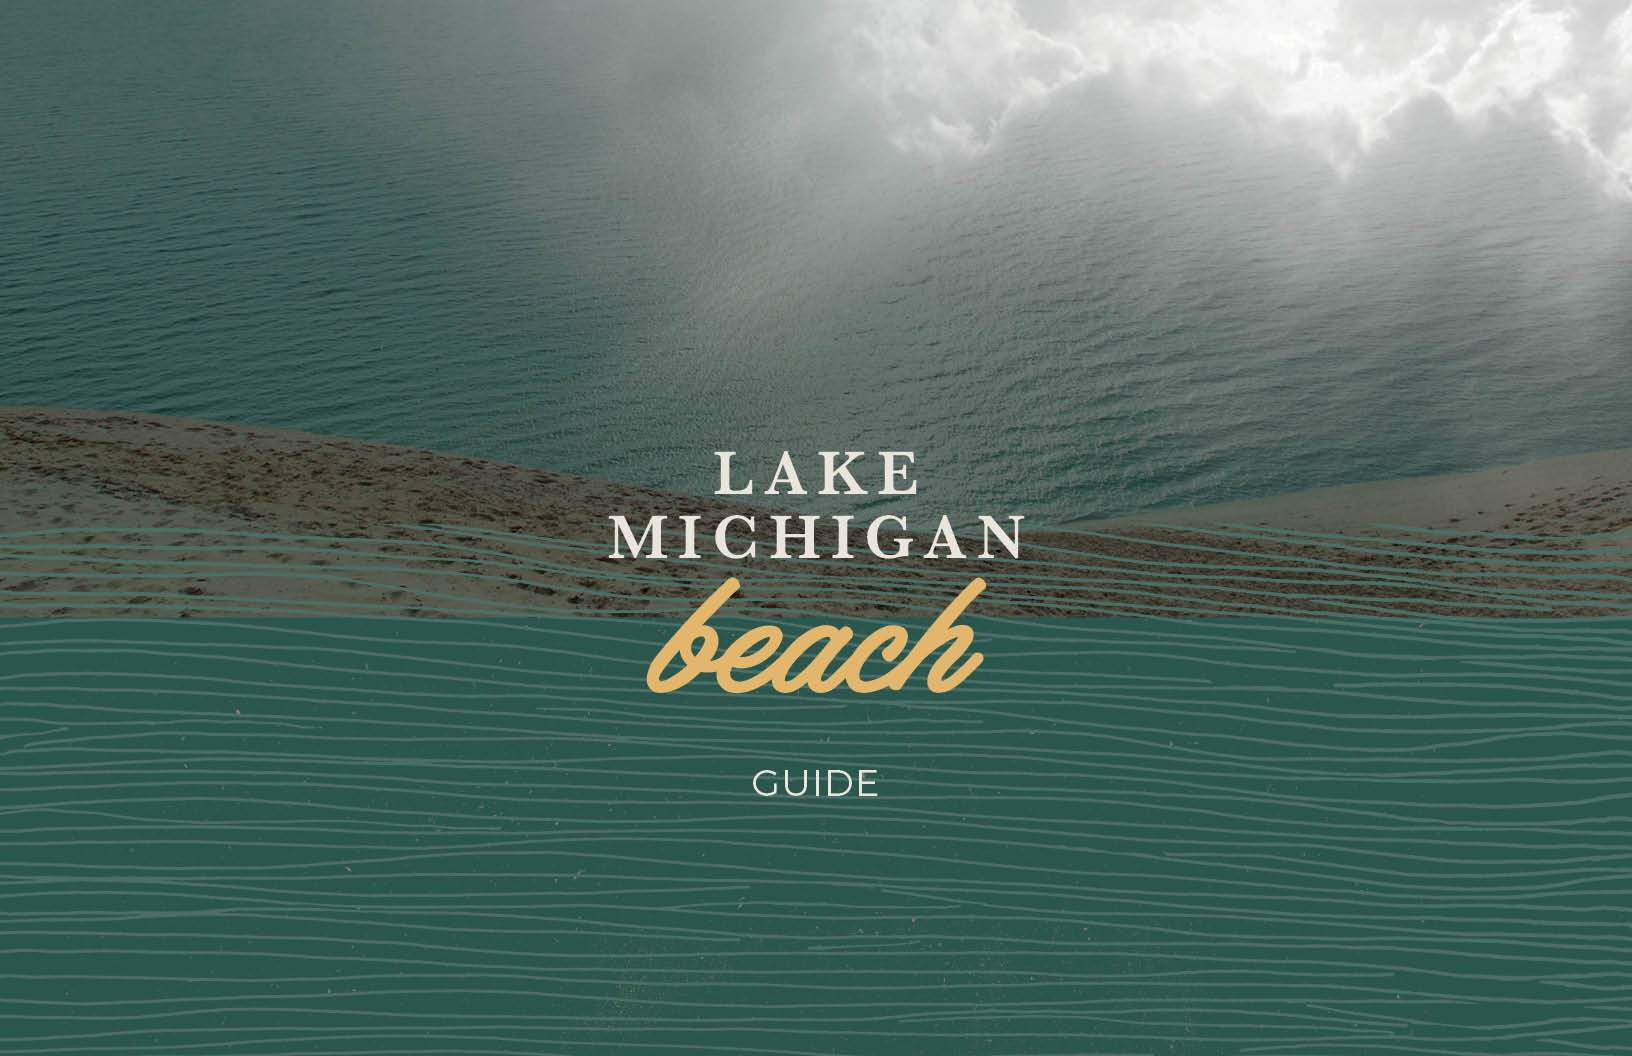 Lake Michigan Beach Guide